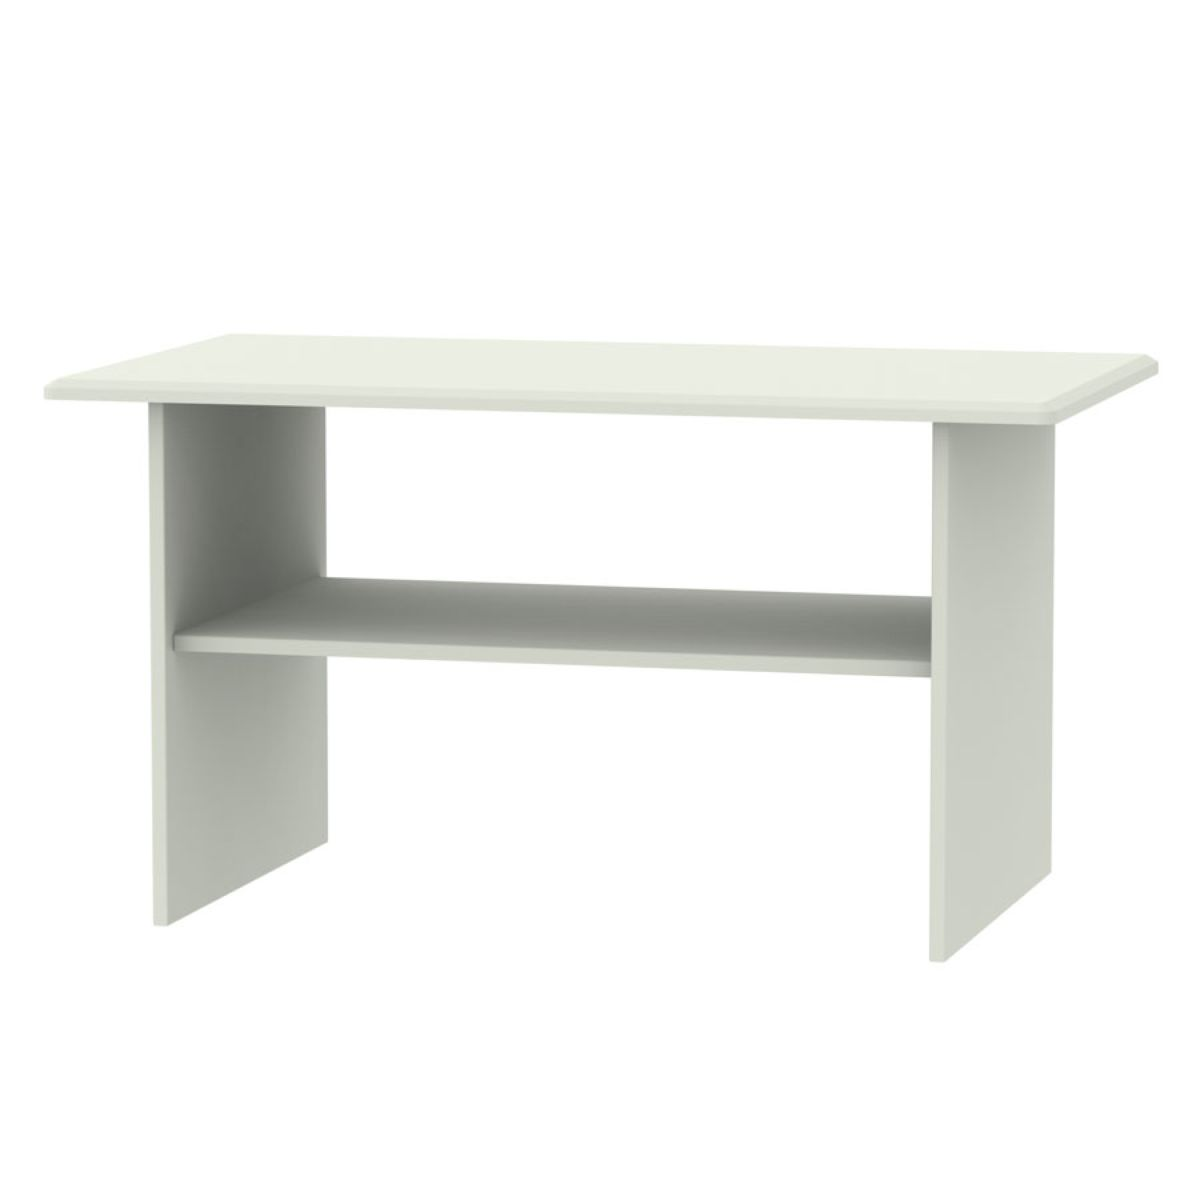 Indices 1-Shelf Coffee Table - Beige